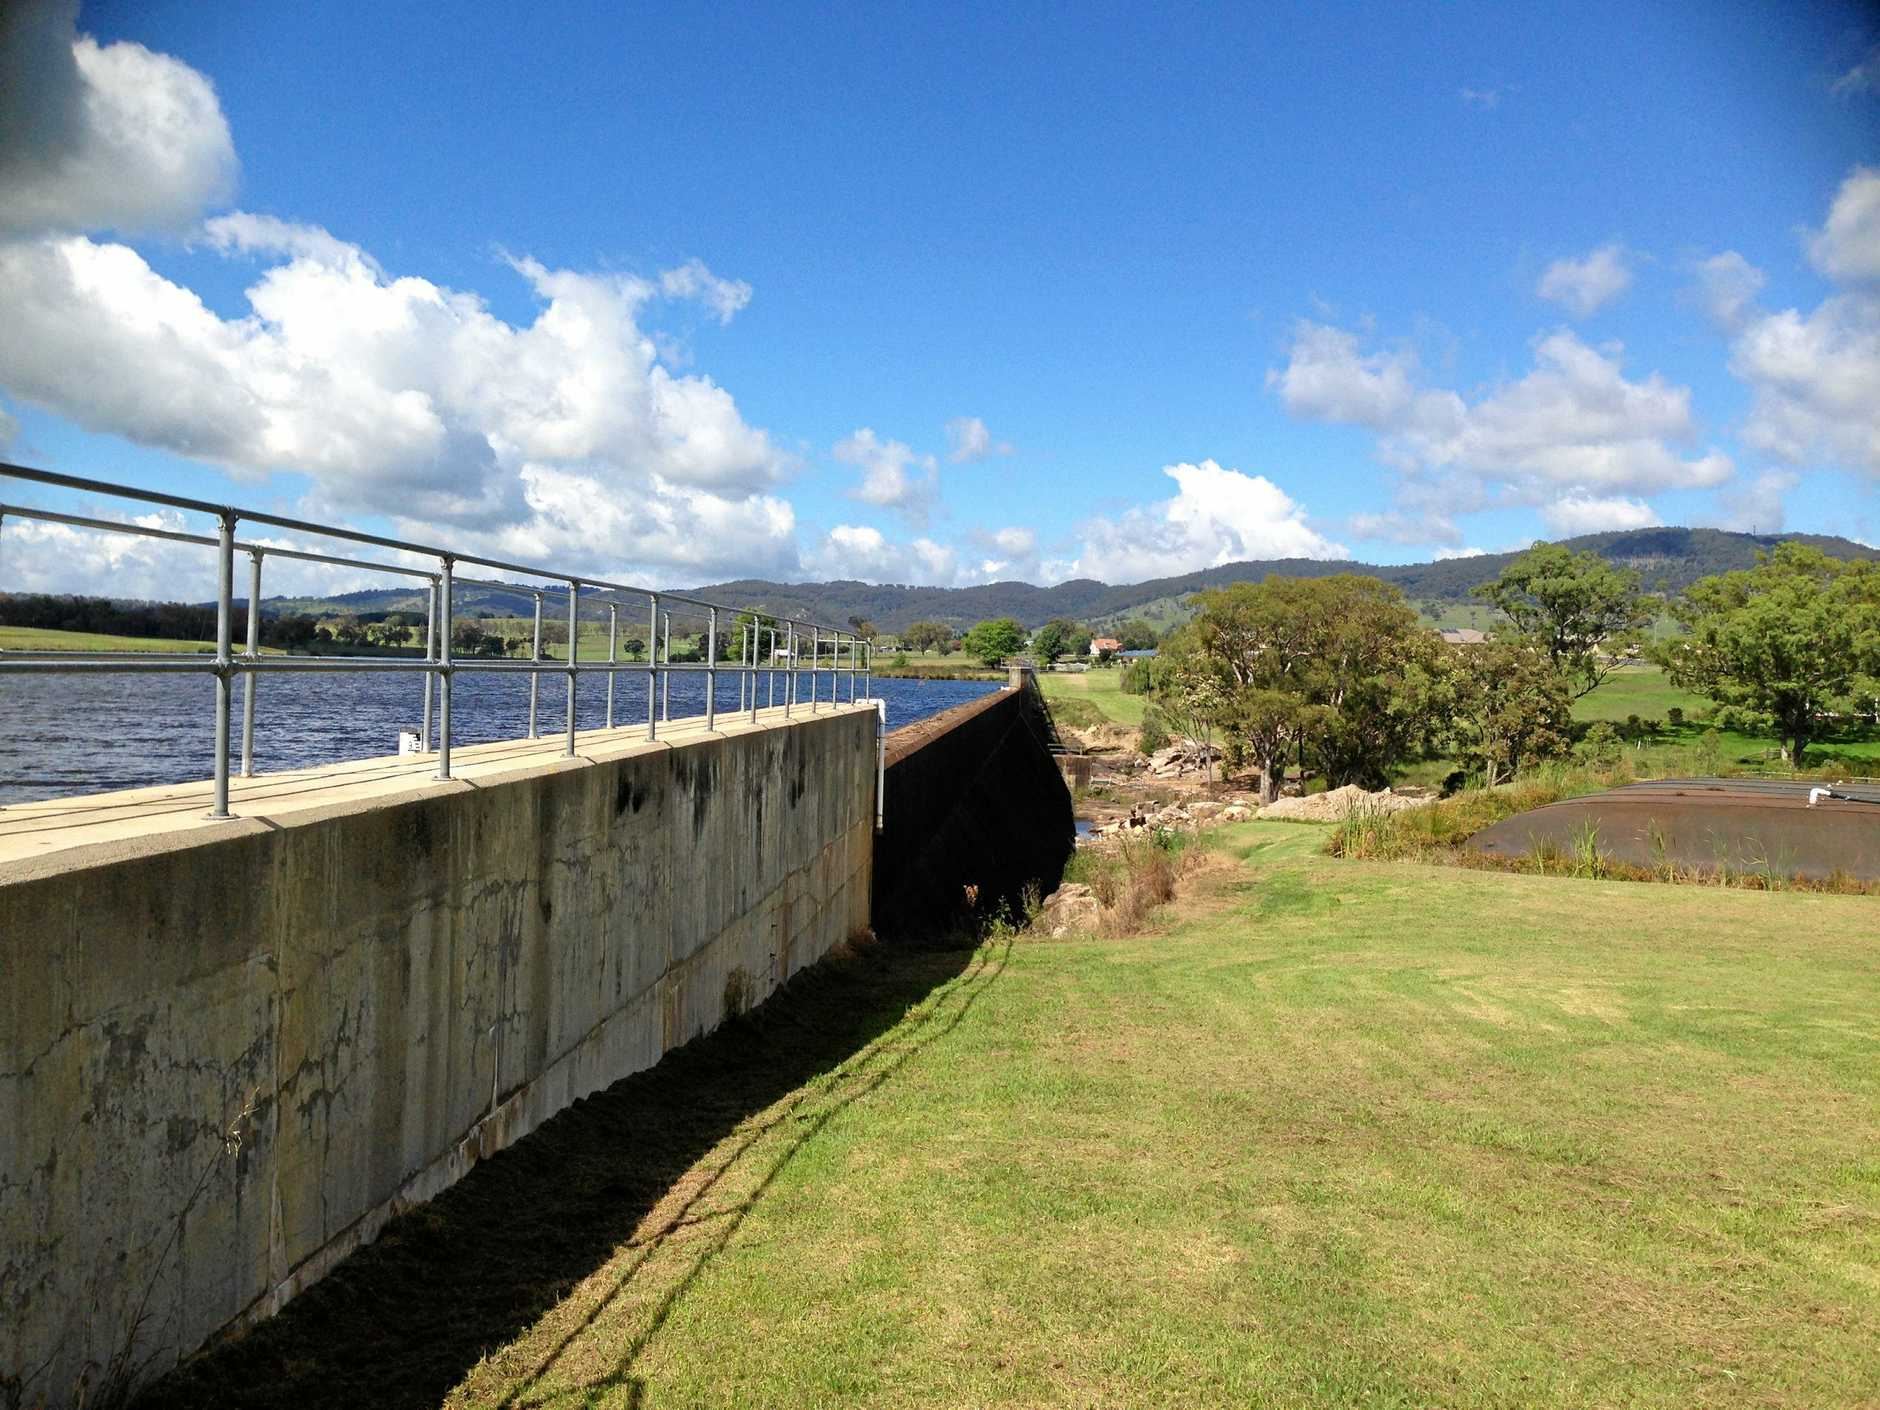 FISHING FUN: Tenterfield Dam will be open from 7am-1pm on Saturday, February 16 for the Farmer Family Fun Fishing Day.